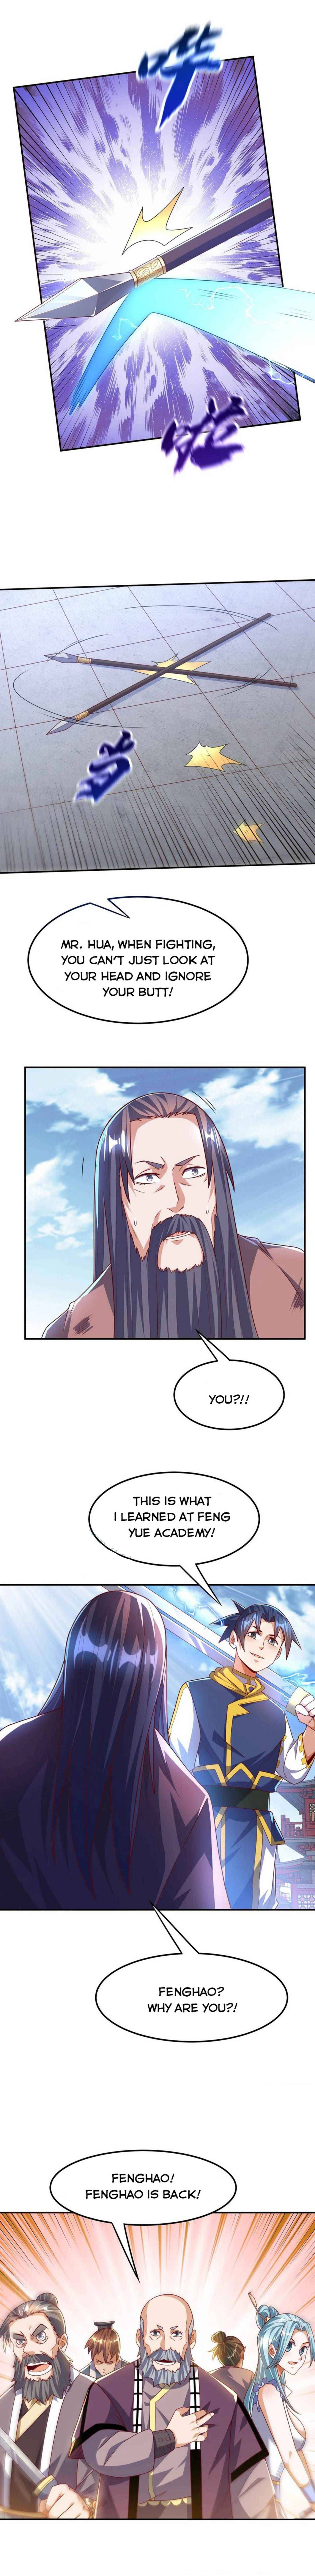 Martial inverse - chapter 182 - #2